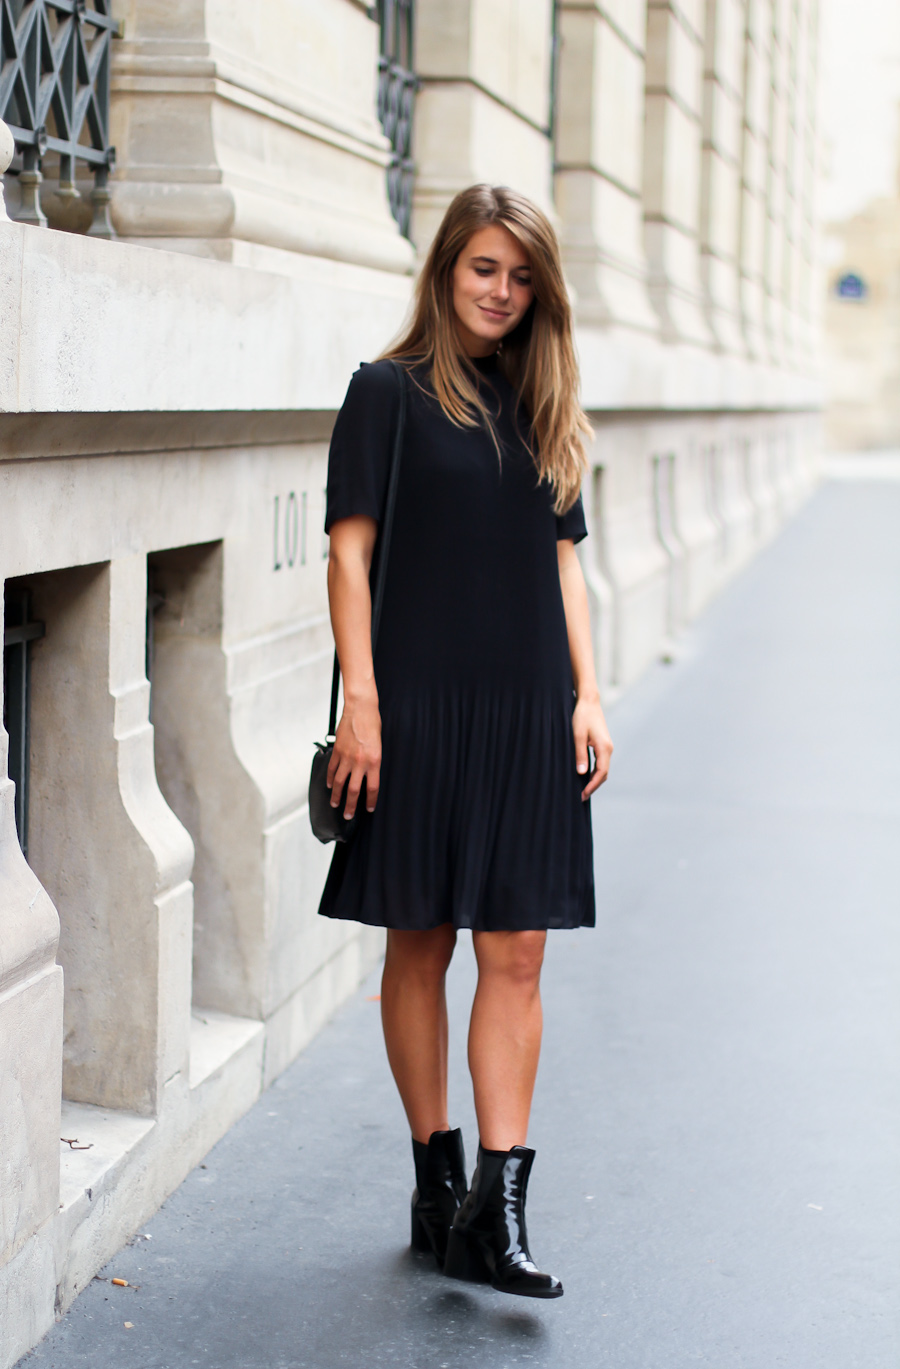 IMG_4577-Clochet cos blue pleated dress paris